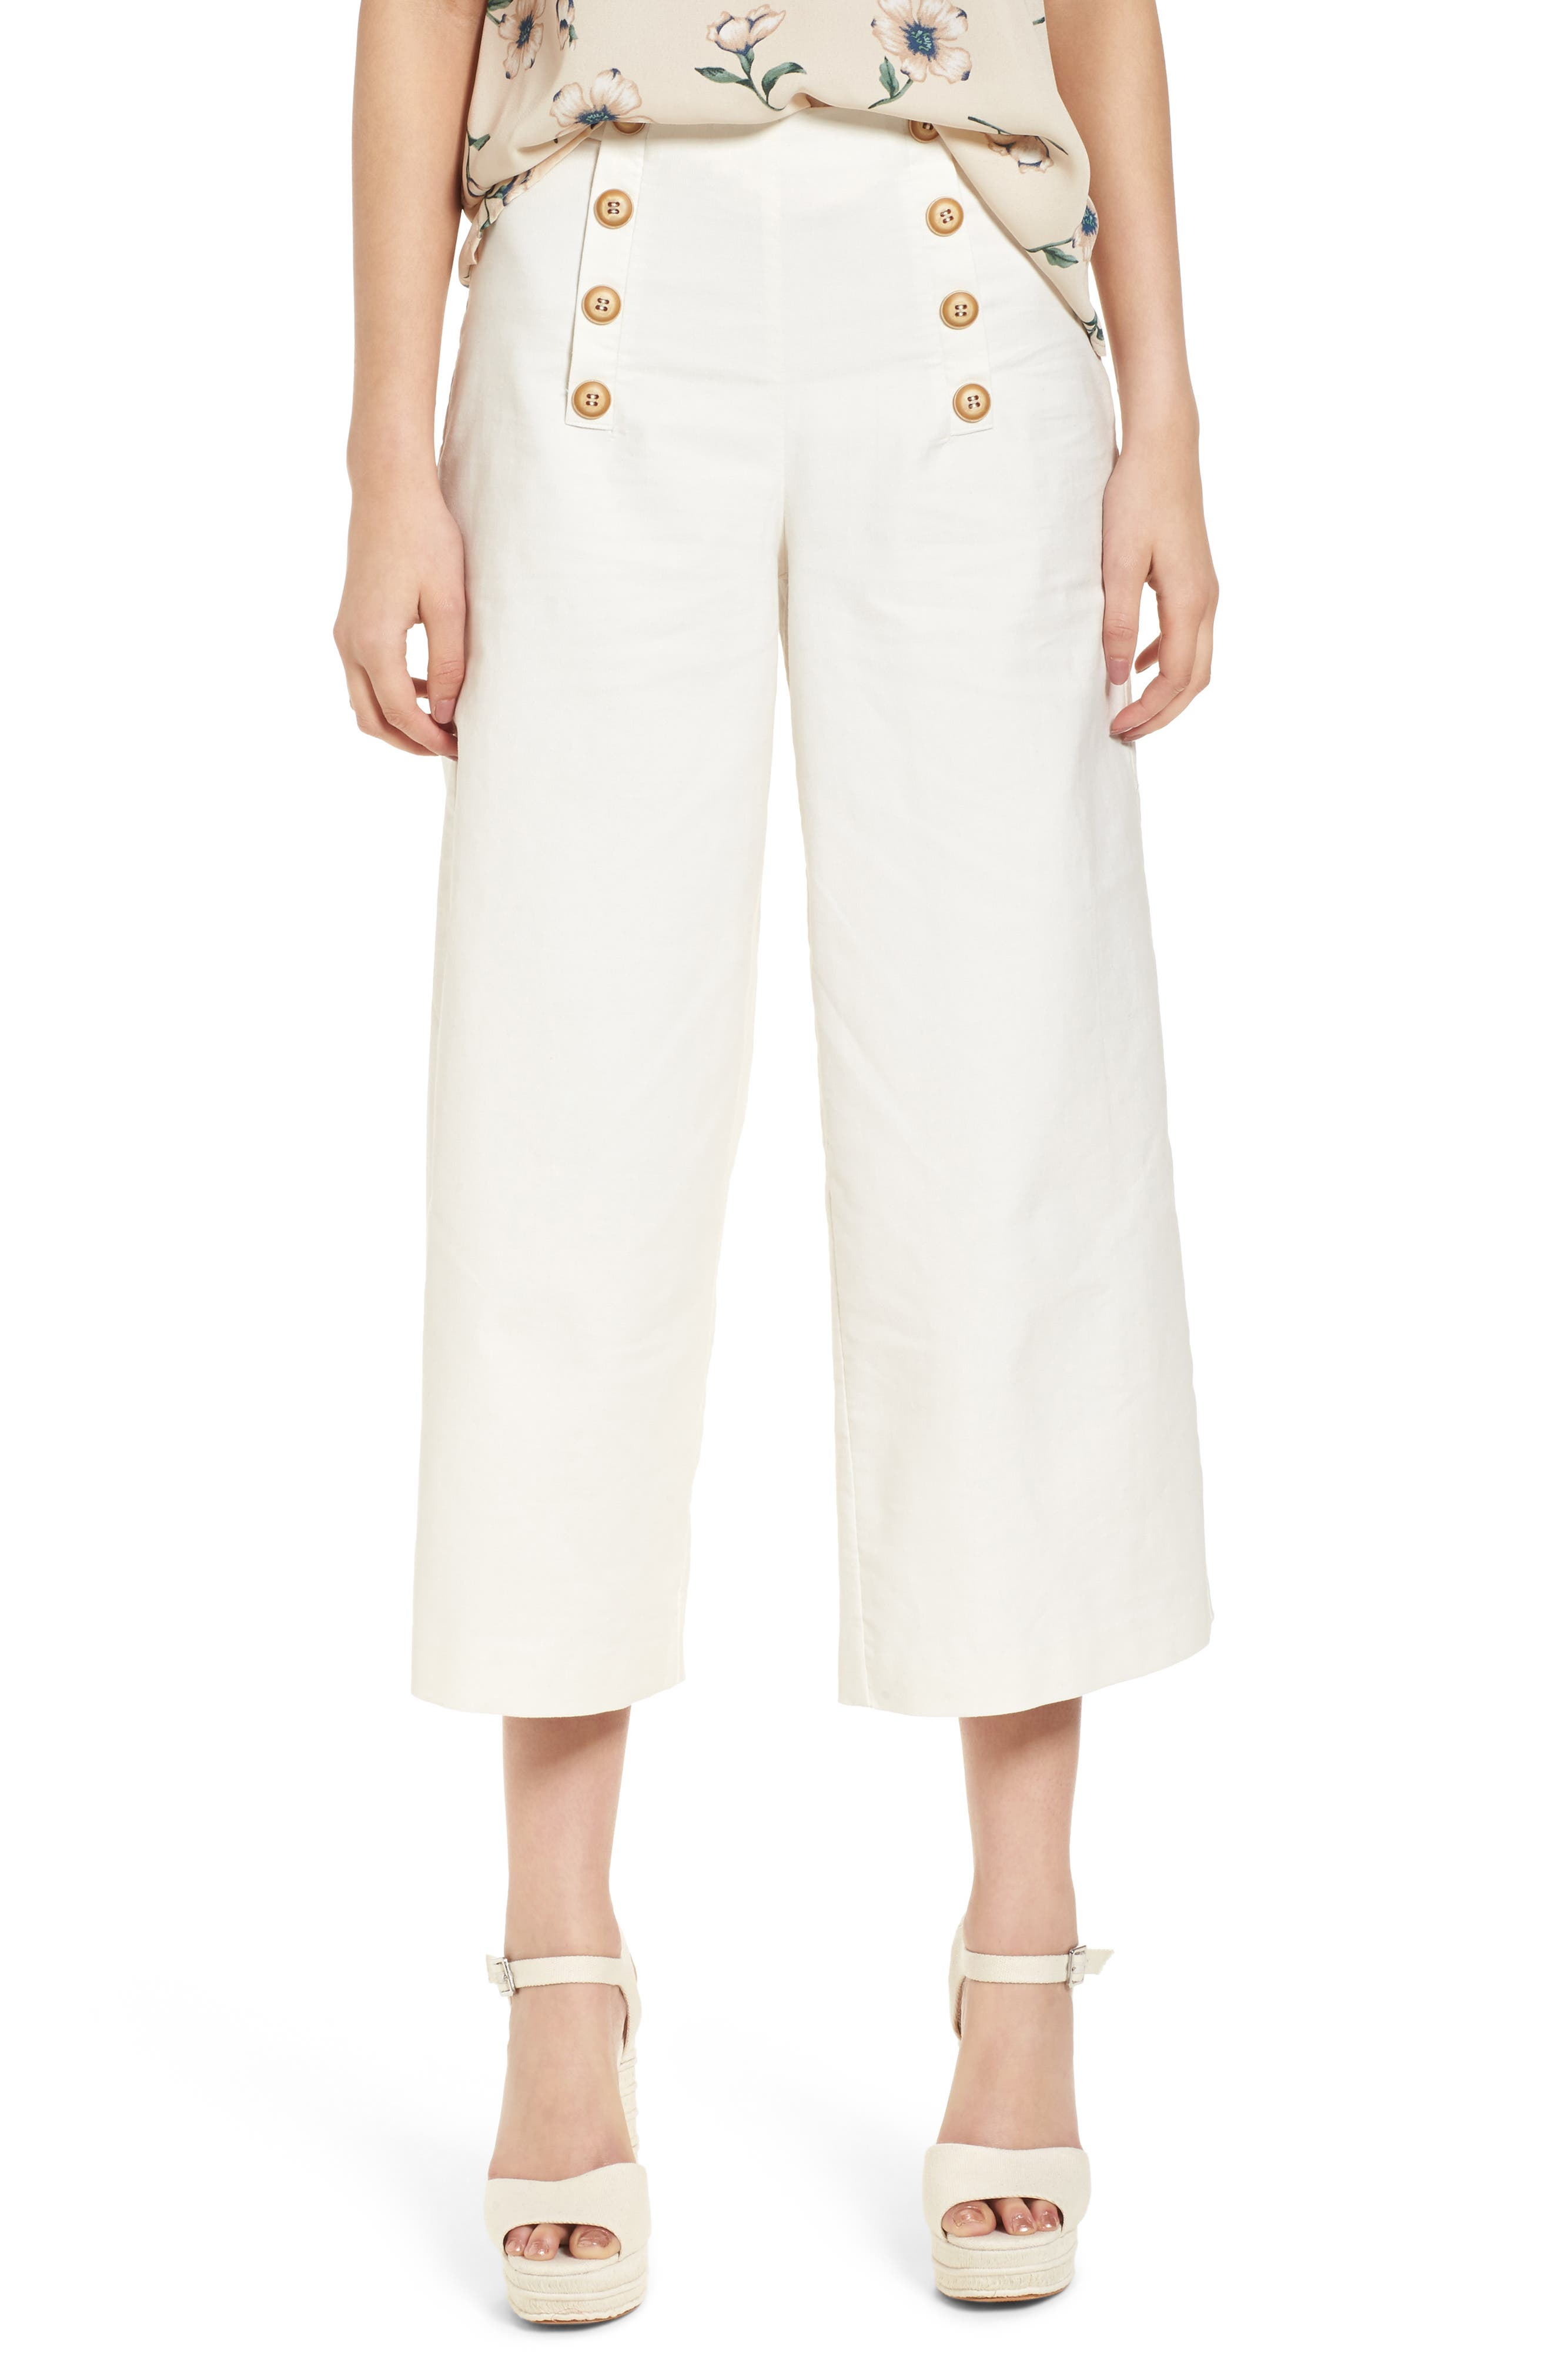 LYDELLE Button Front Culottes